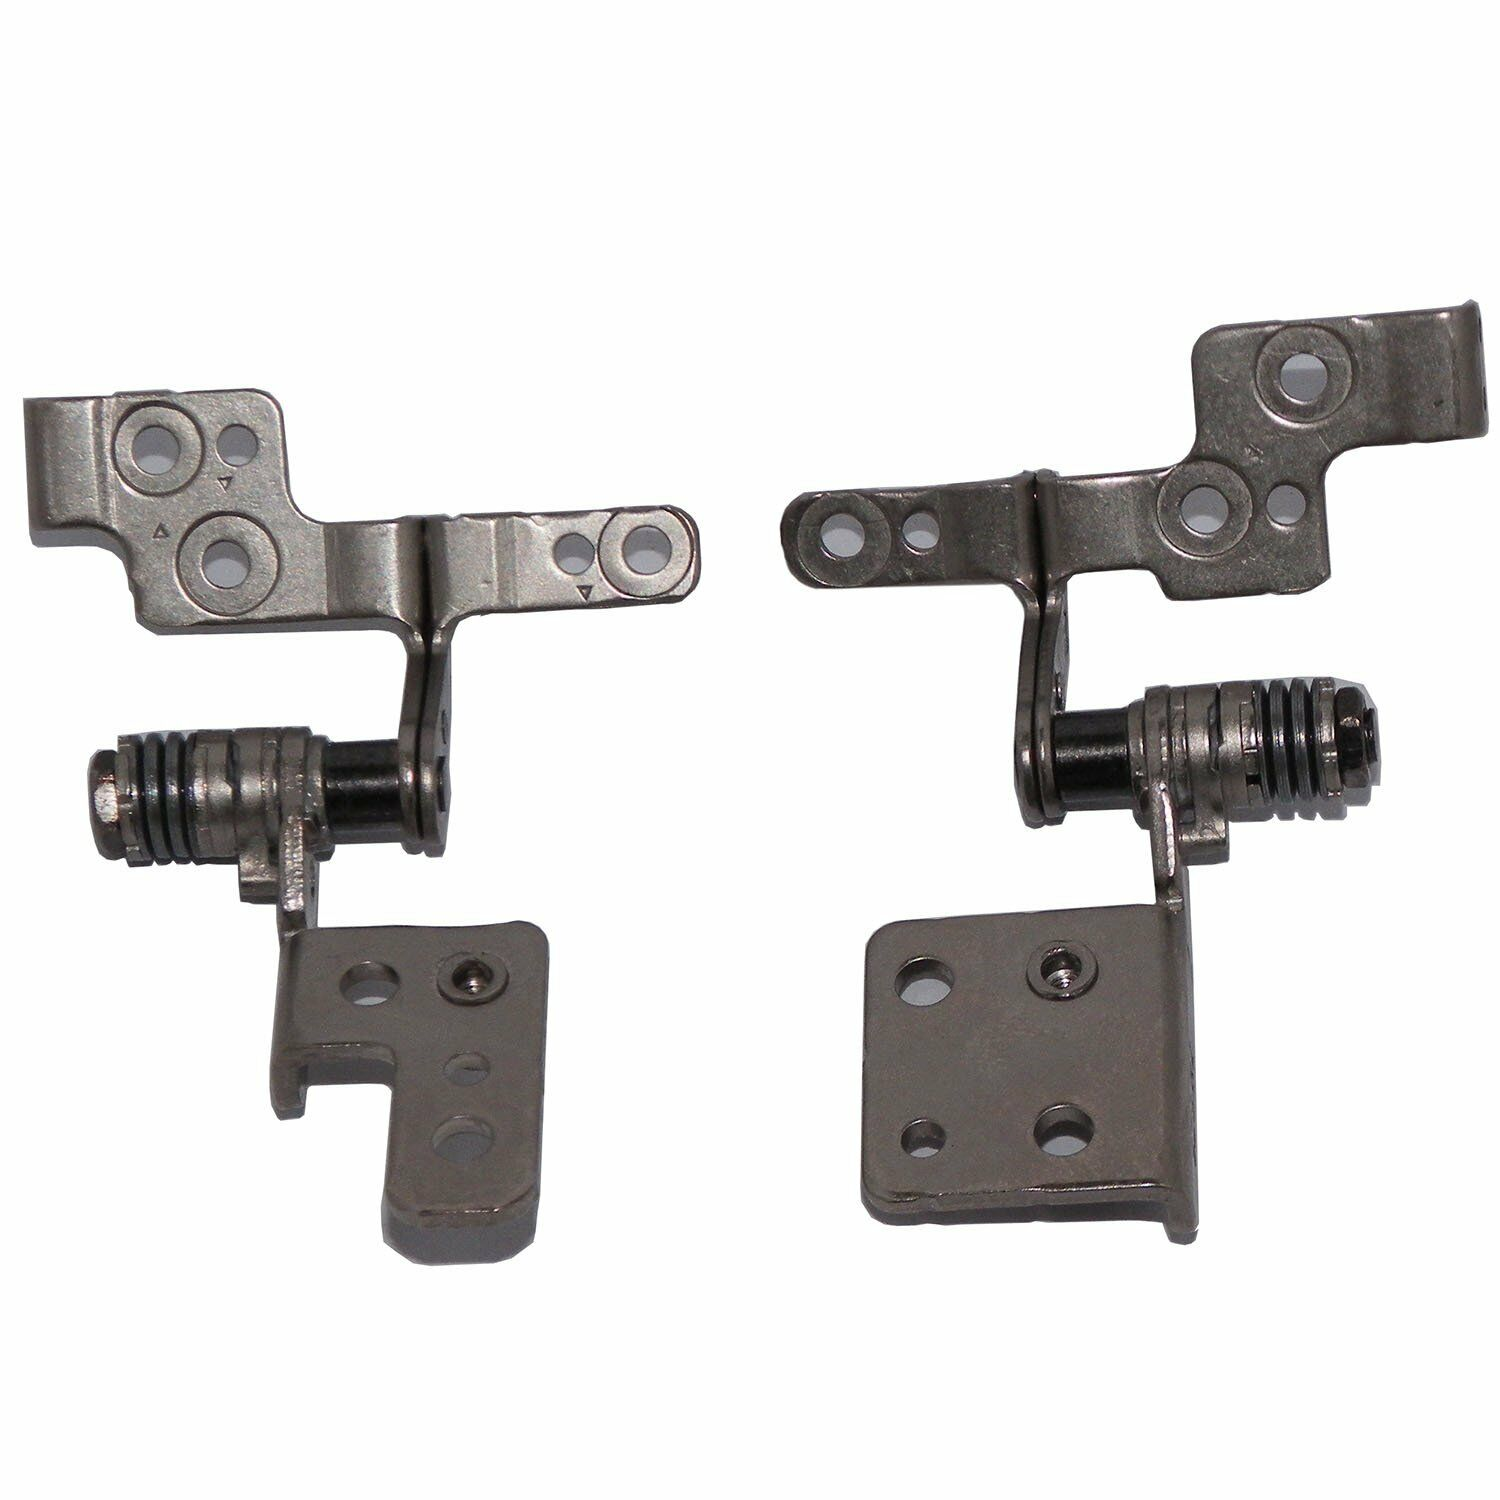 <font><b>Laptop</b></font> Lcd Hinges For <font><b>Samsung</b></font> NP 510R5E 470R5E <font><b>NP470R5E</b></font> NP510R5E LCD Screen Hinge Set Left Right image